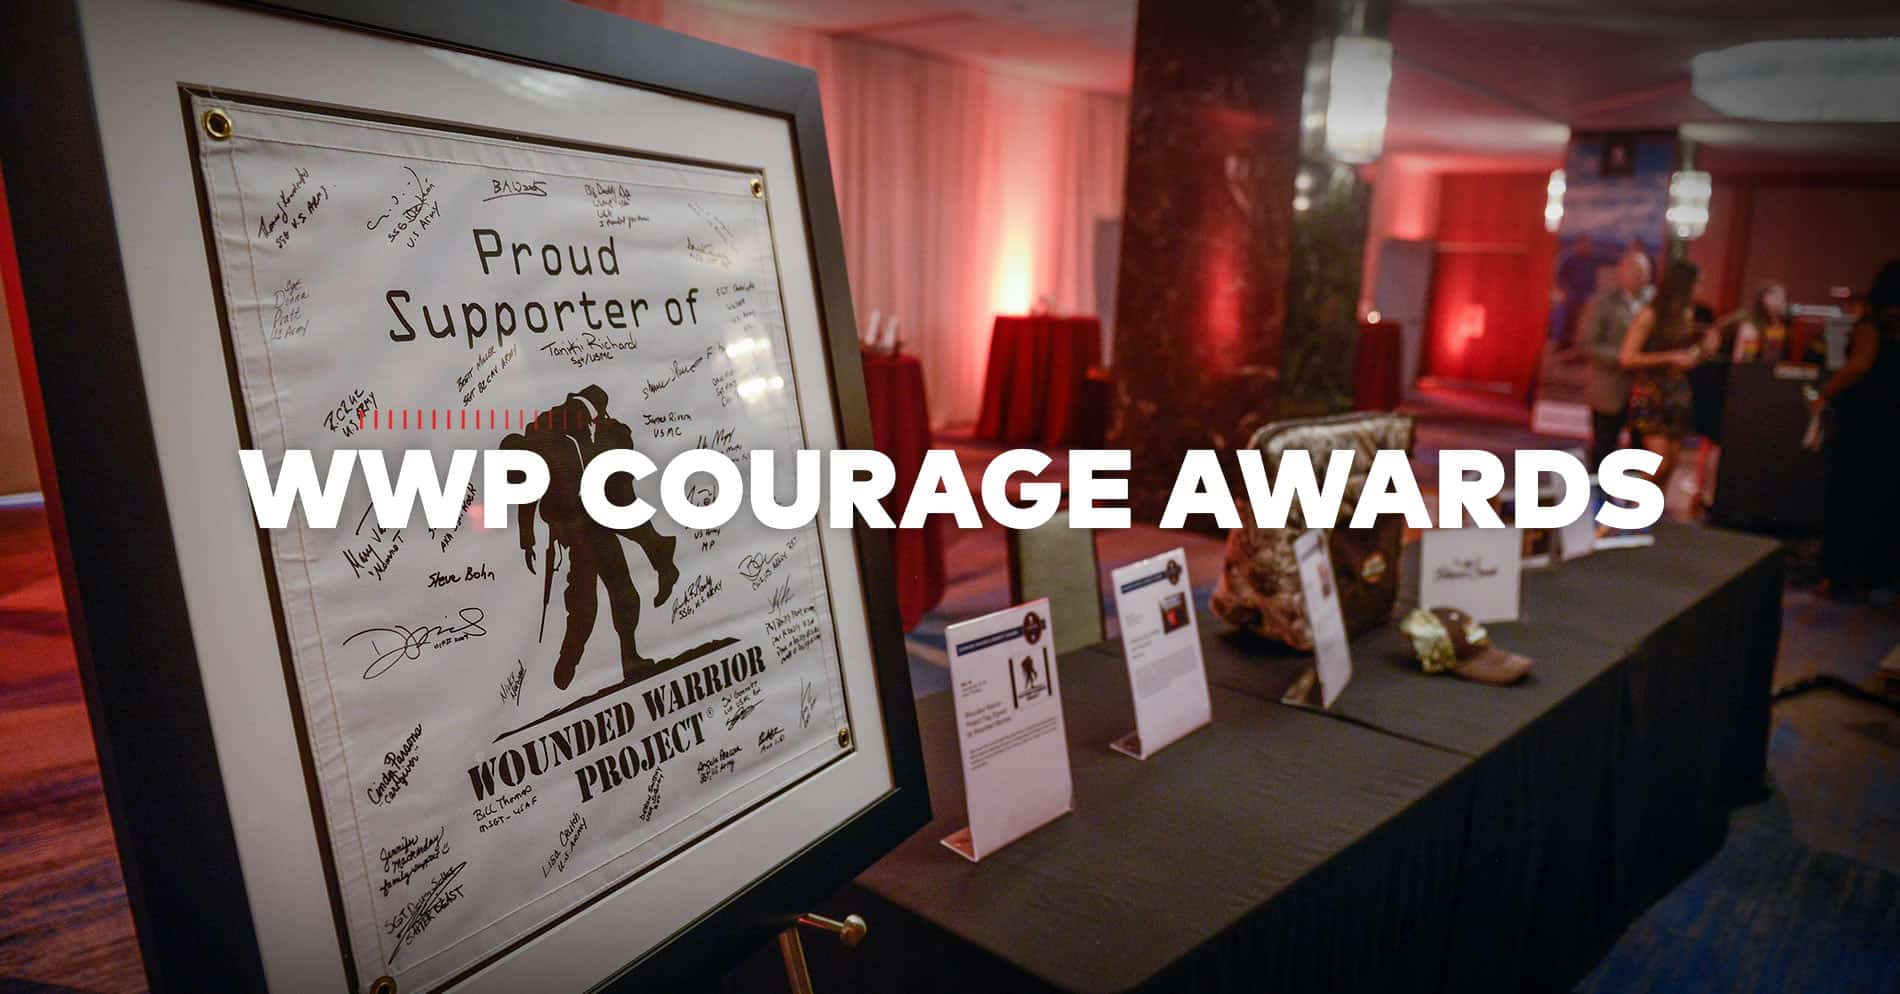 WWP Courage Awards - MTM Watches